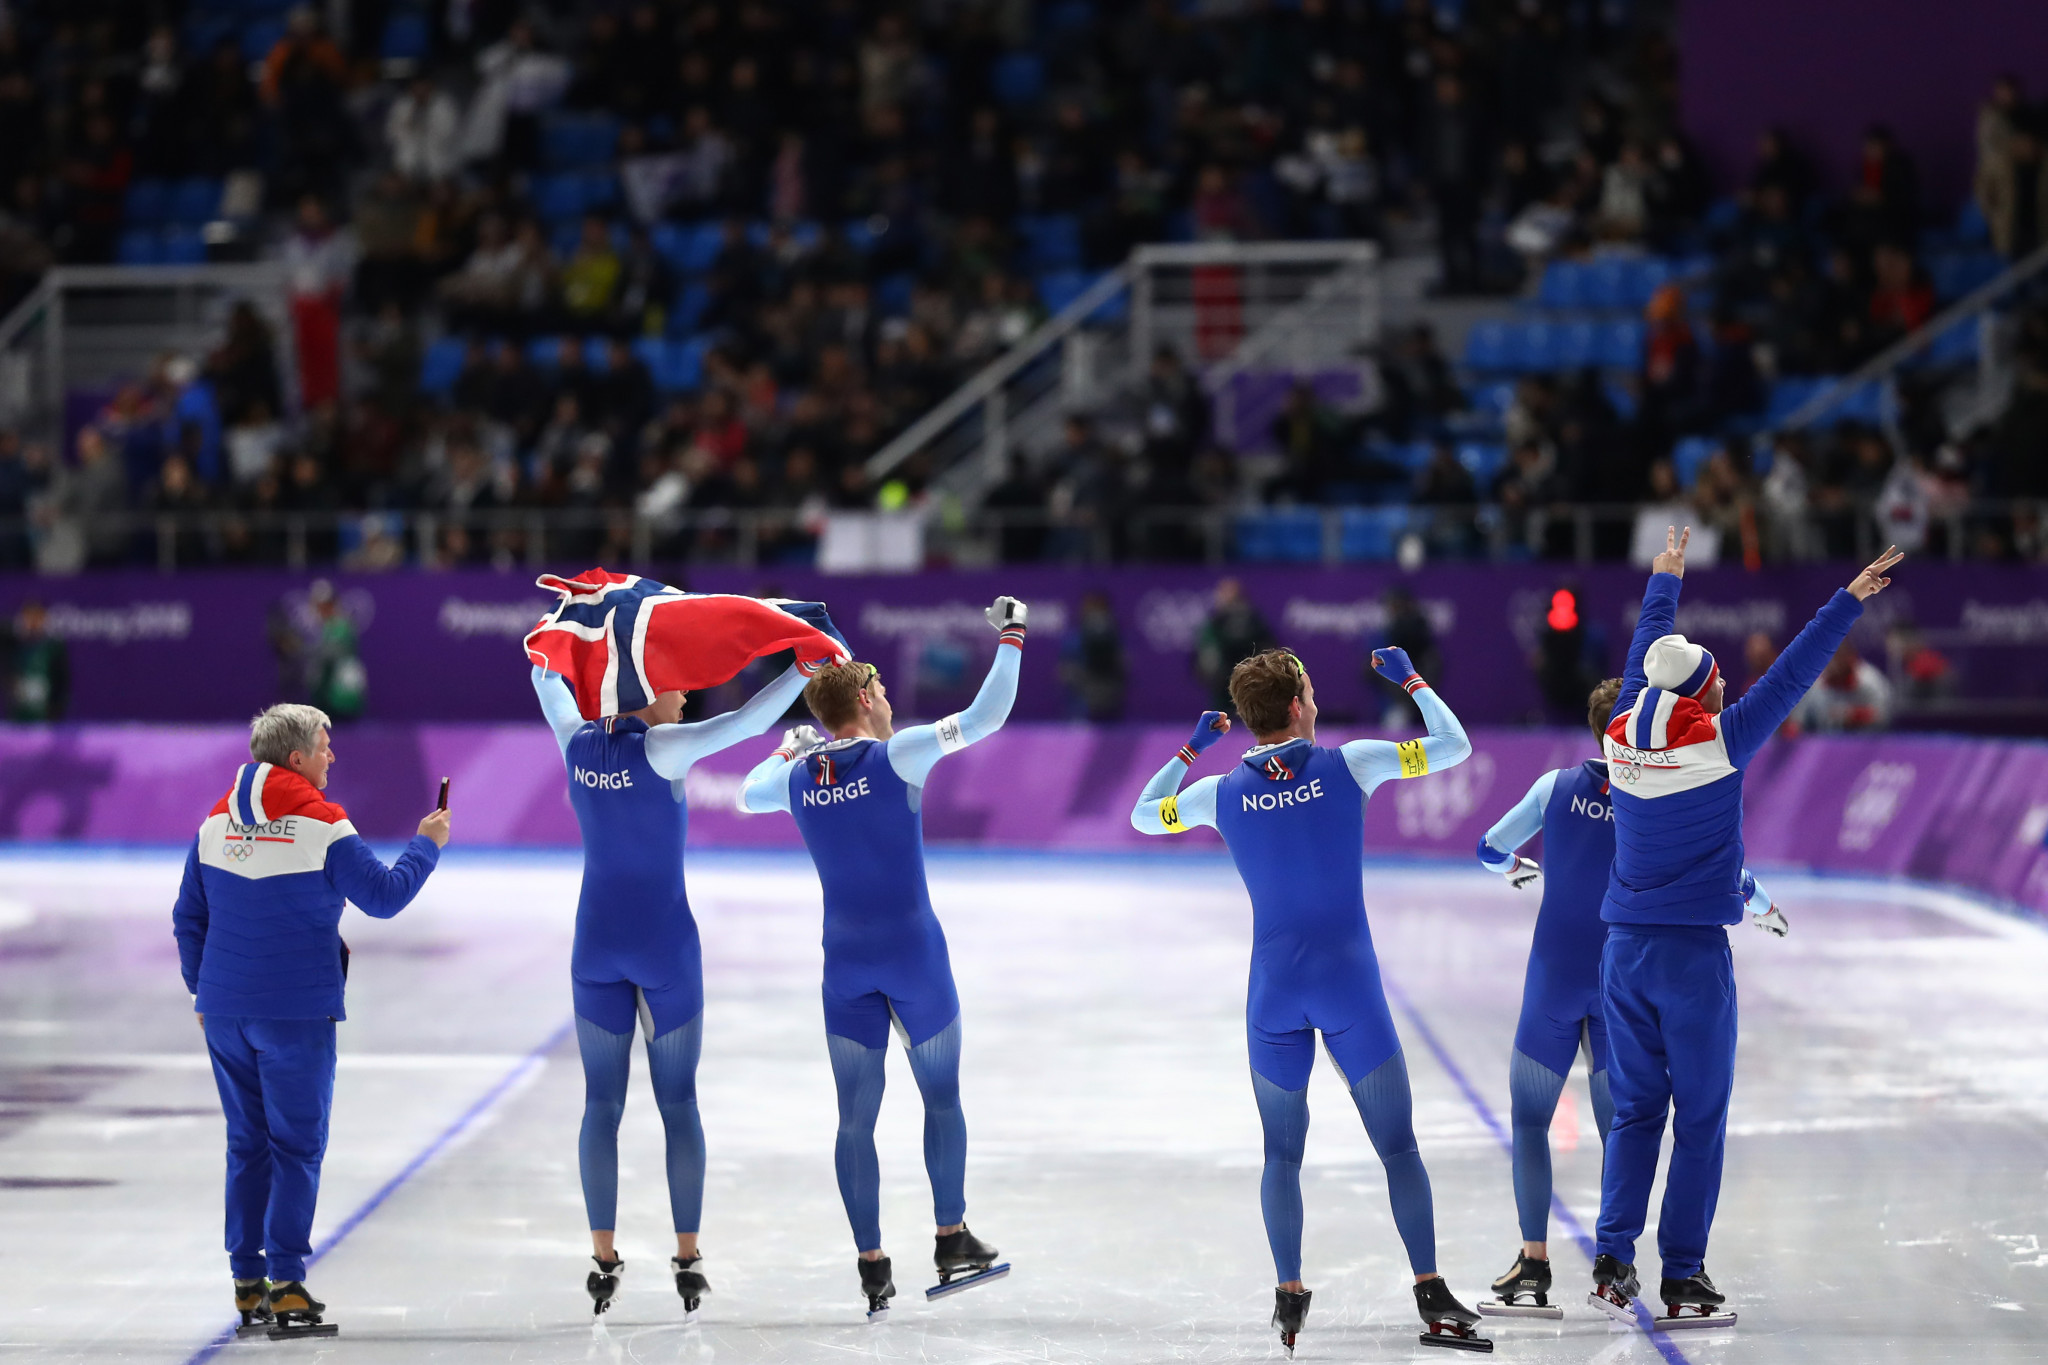 Olympic speedskating: Women's team pursuit finals results and highlights